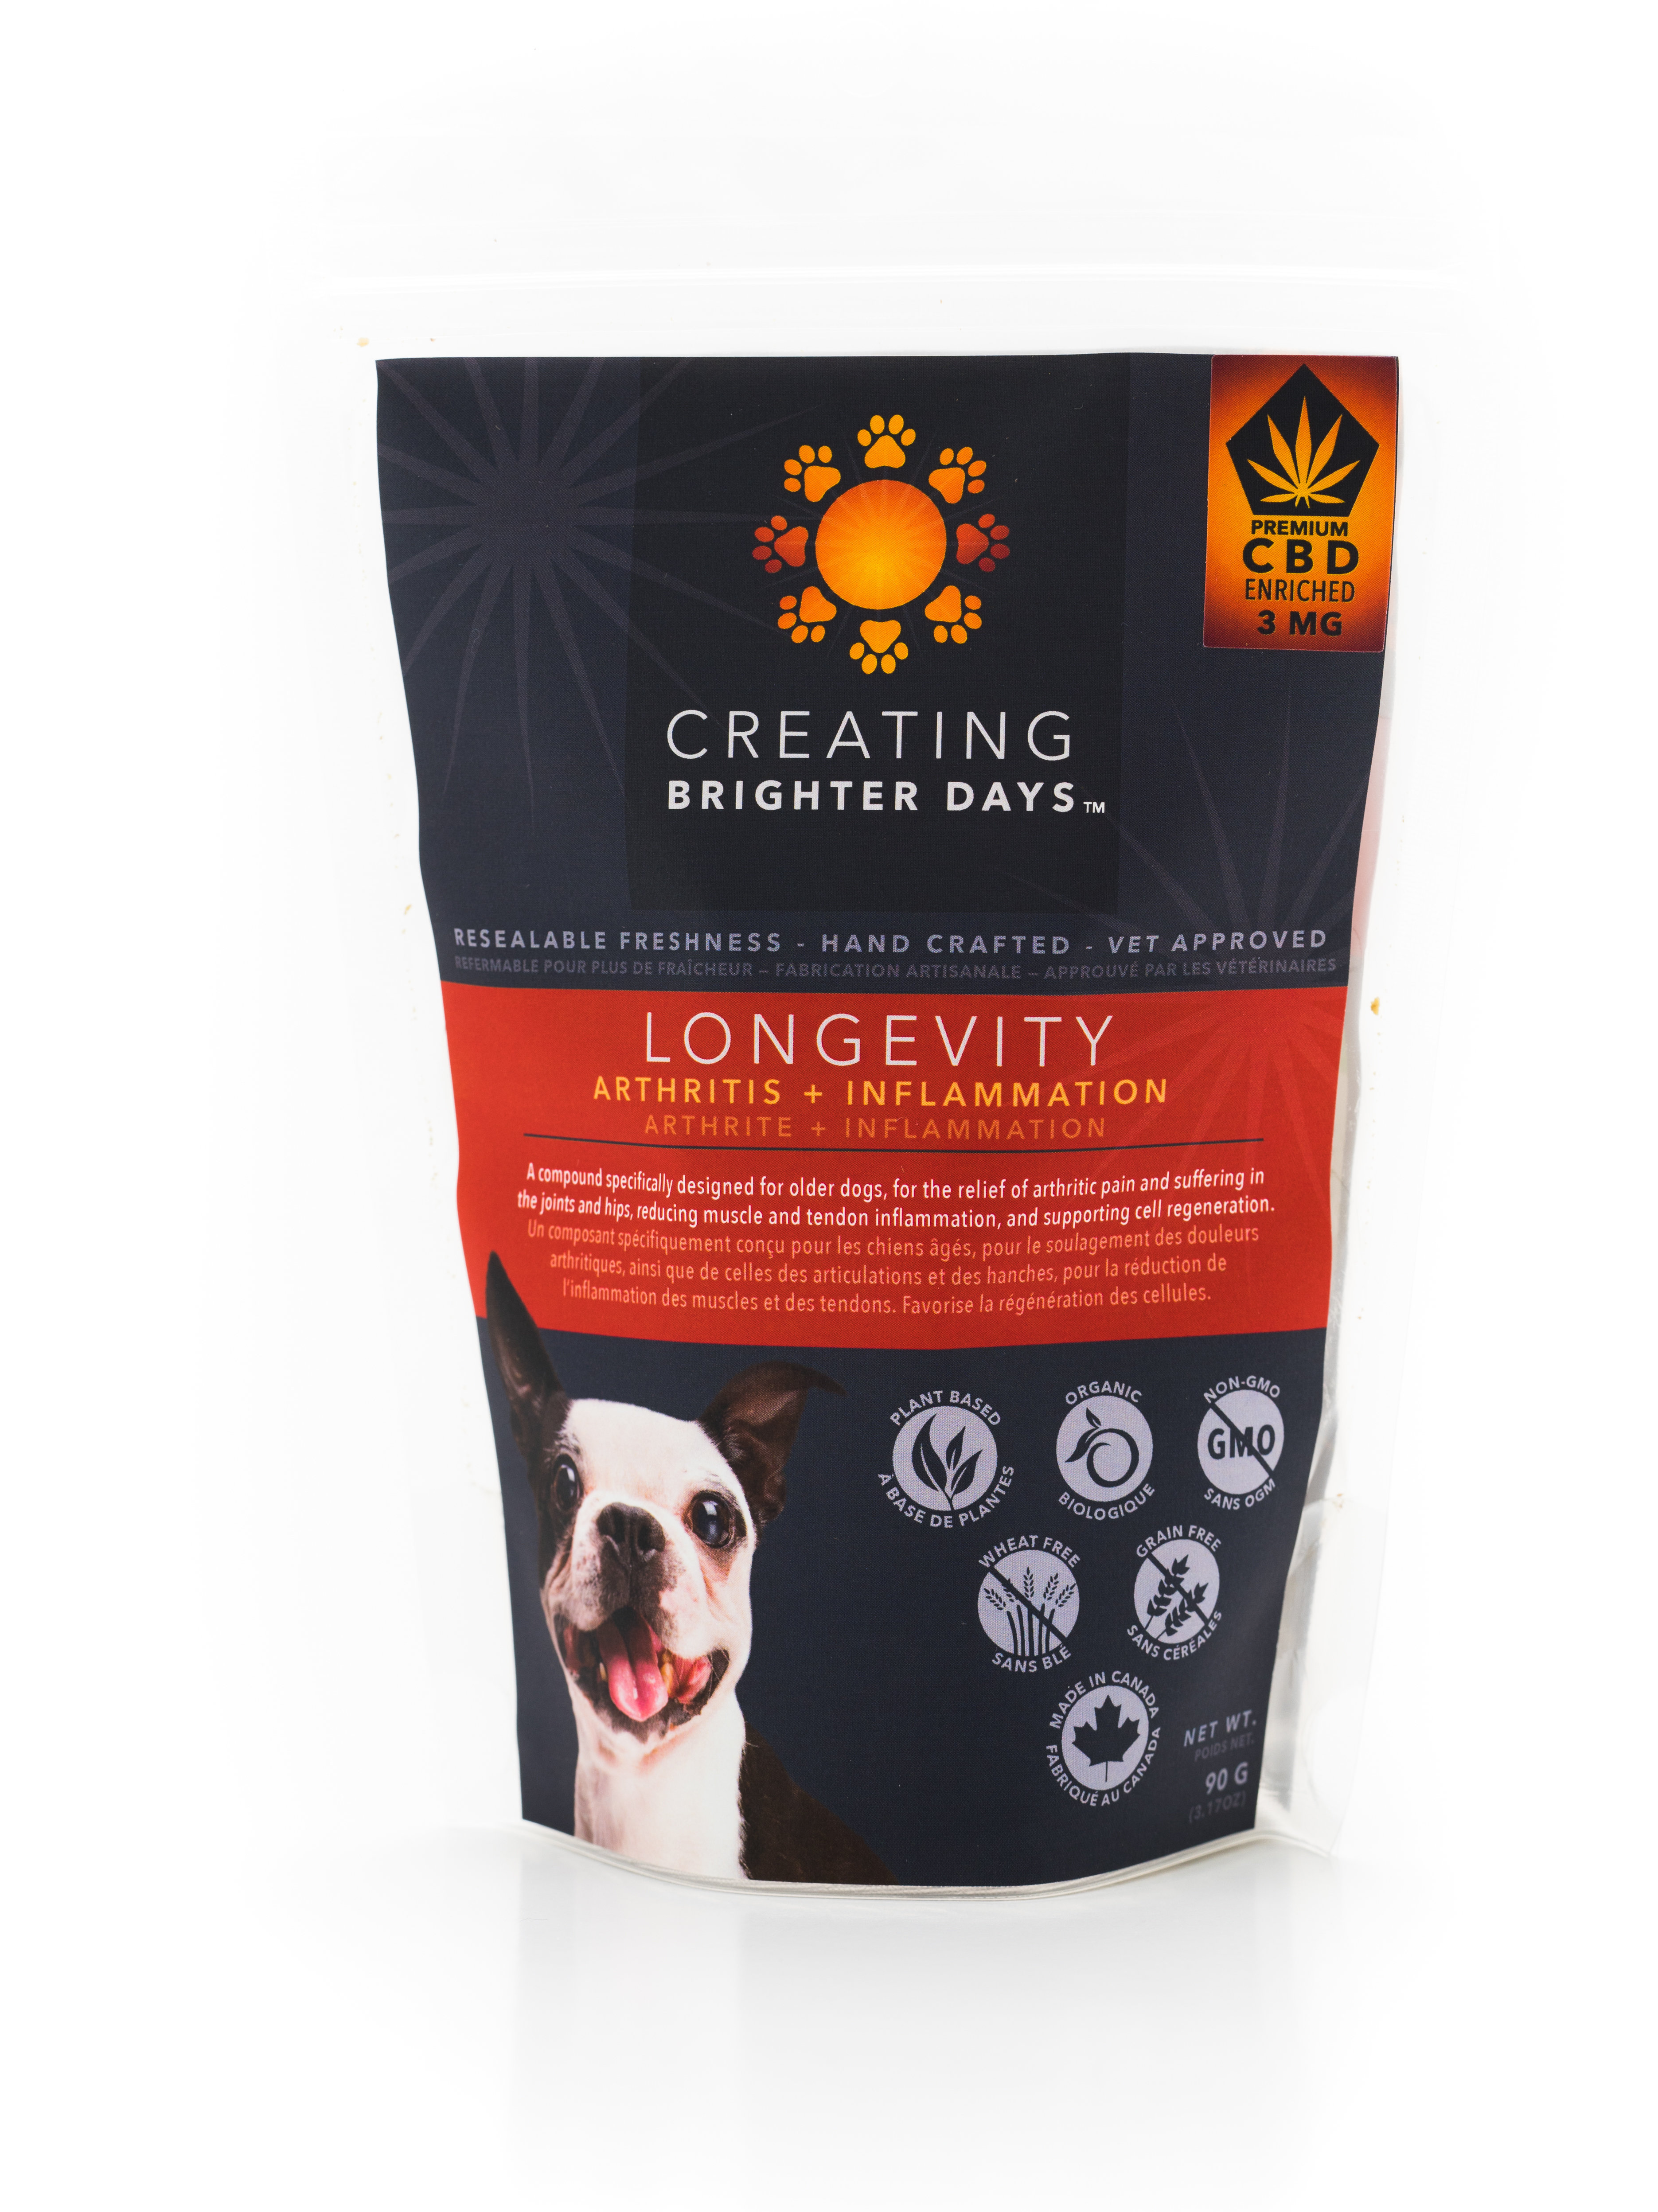 Longevity Enriched Treats (3mg CBD) by Creating Brighter Days 00092